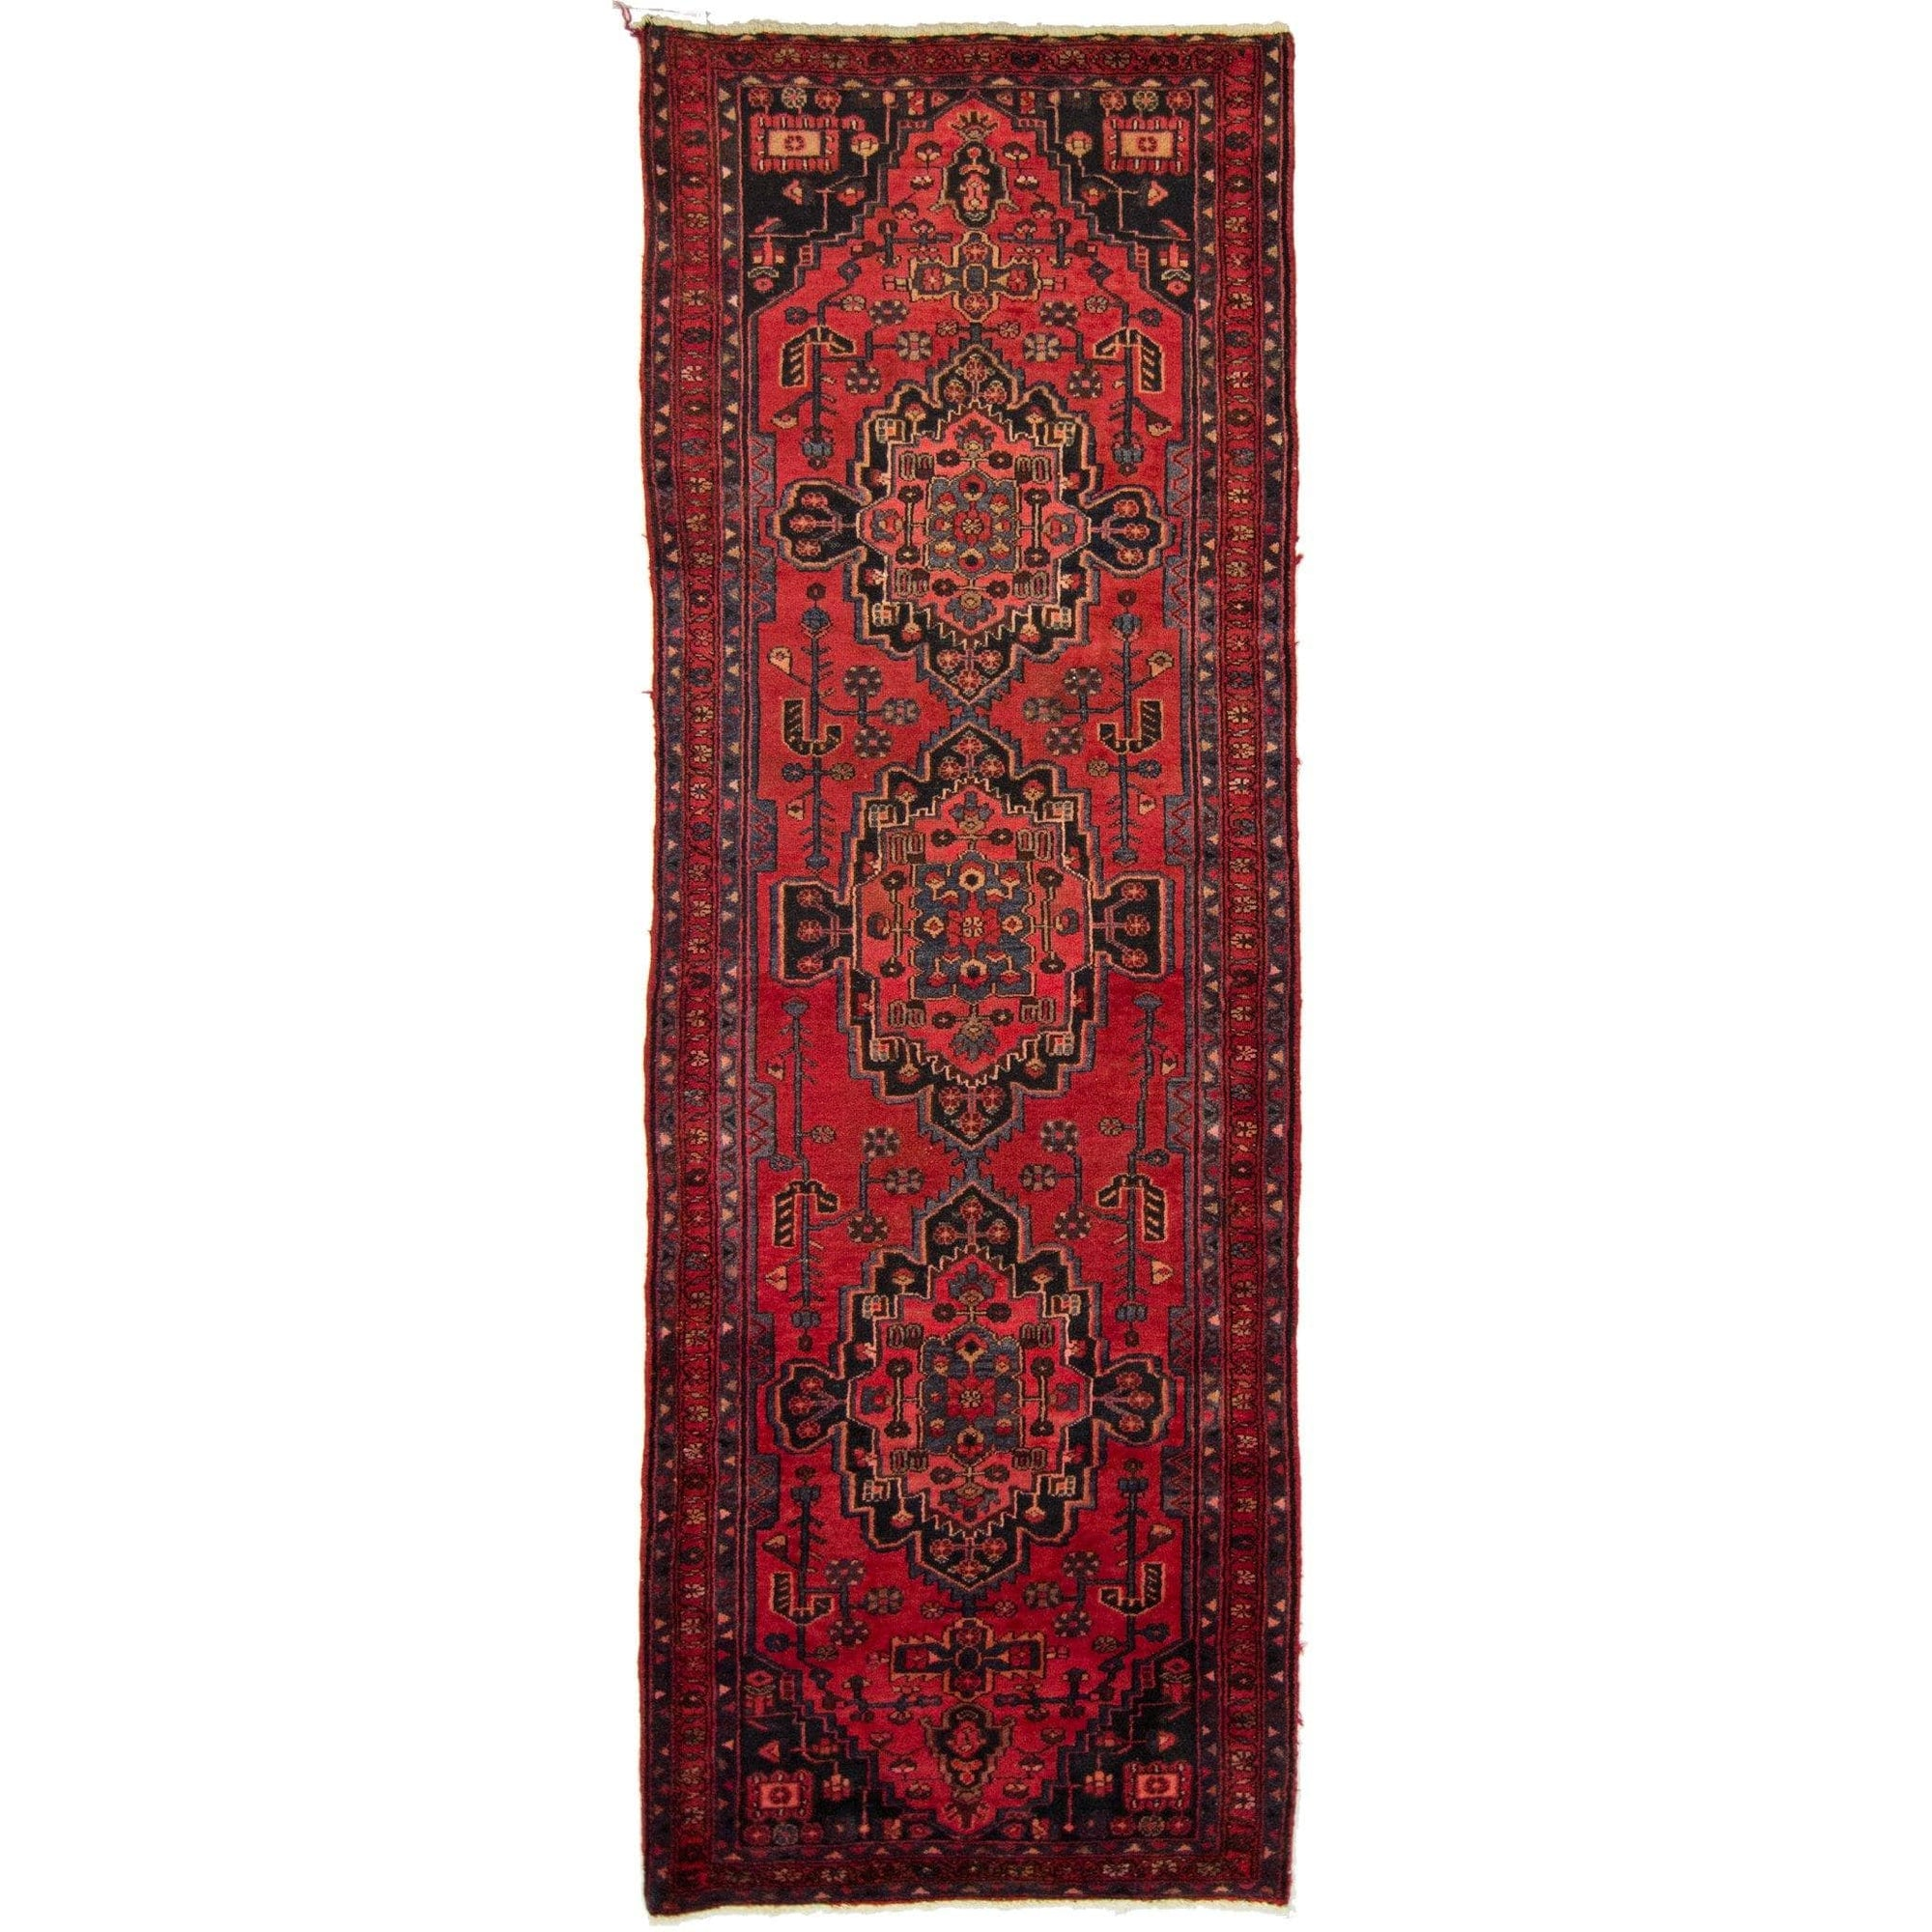 Authentic Persian Hand-knotted Wool Hamadan Runner 100cm x 293cm Persian-Rug | House-of-Haghi | NewMarket | Auckland | NZ | Handmade Persian Rugs | Hand Knotted Persian Rugs